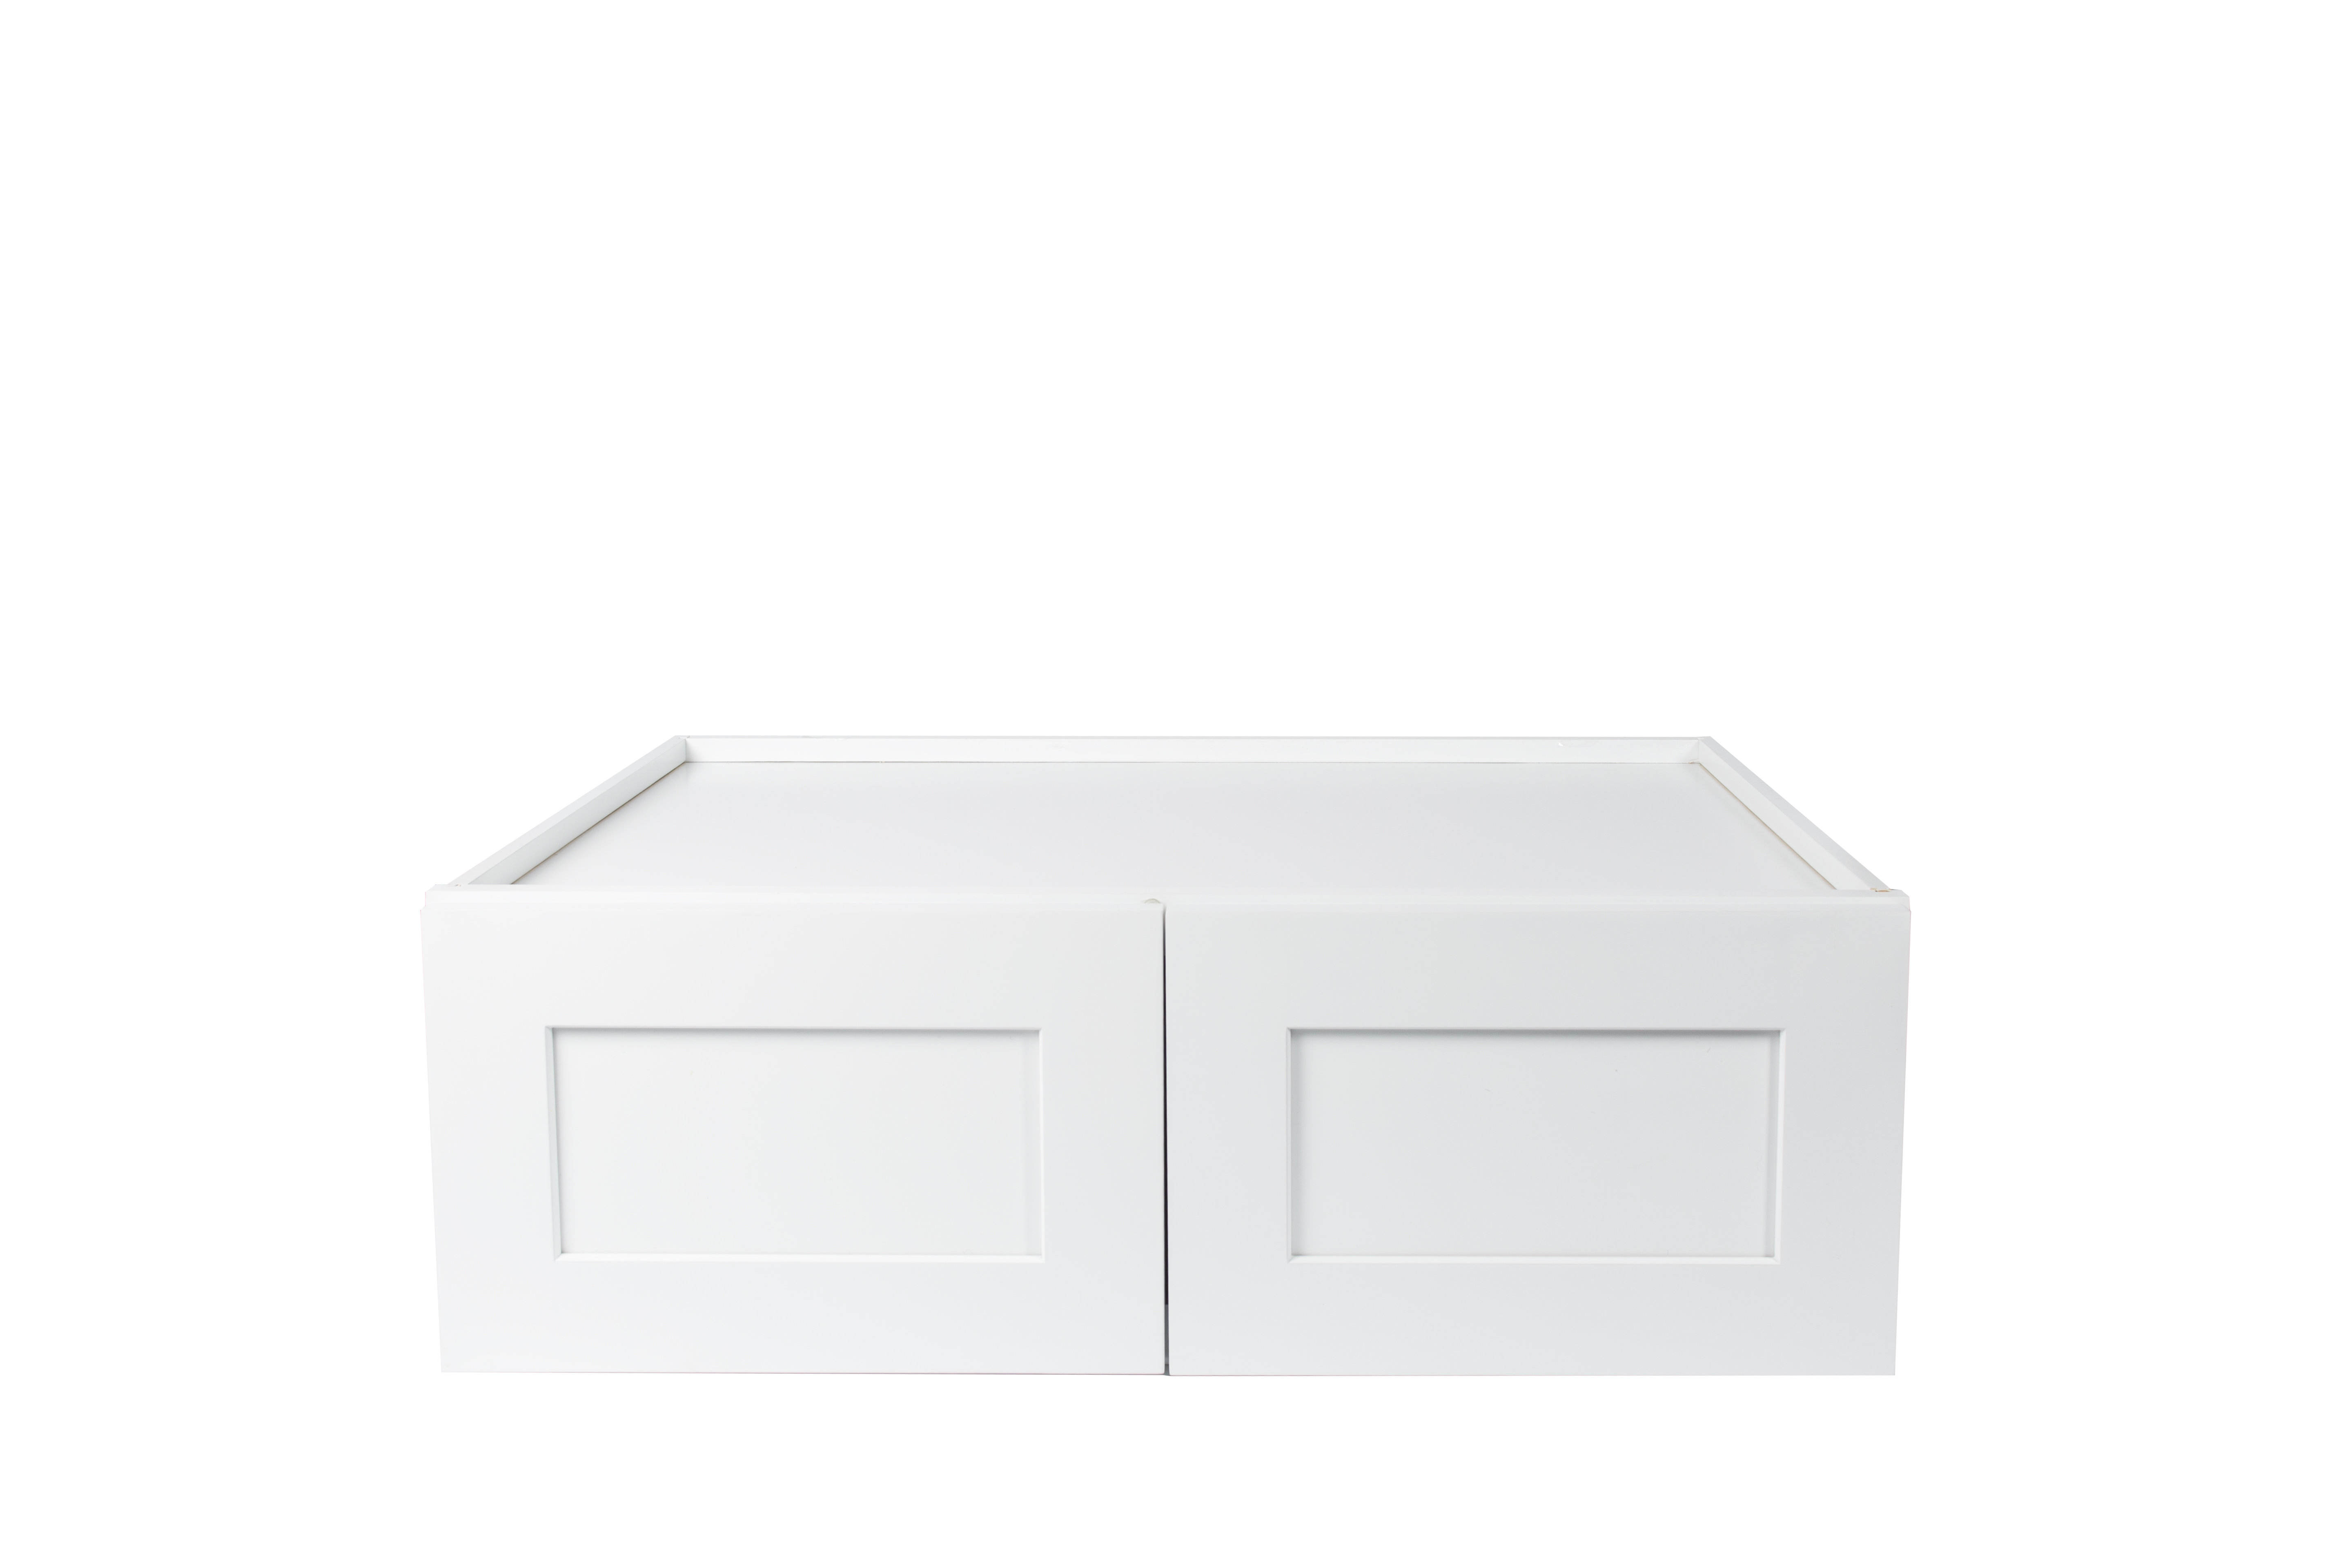 Ready to Assemble 24x21x12 in. Shaker High Double Door Wall Cabinet in White